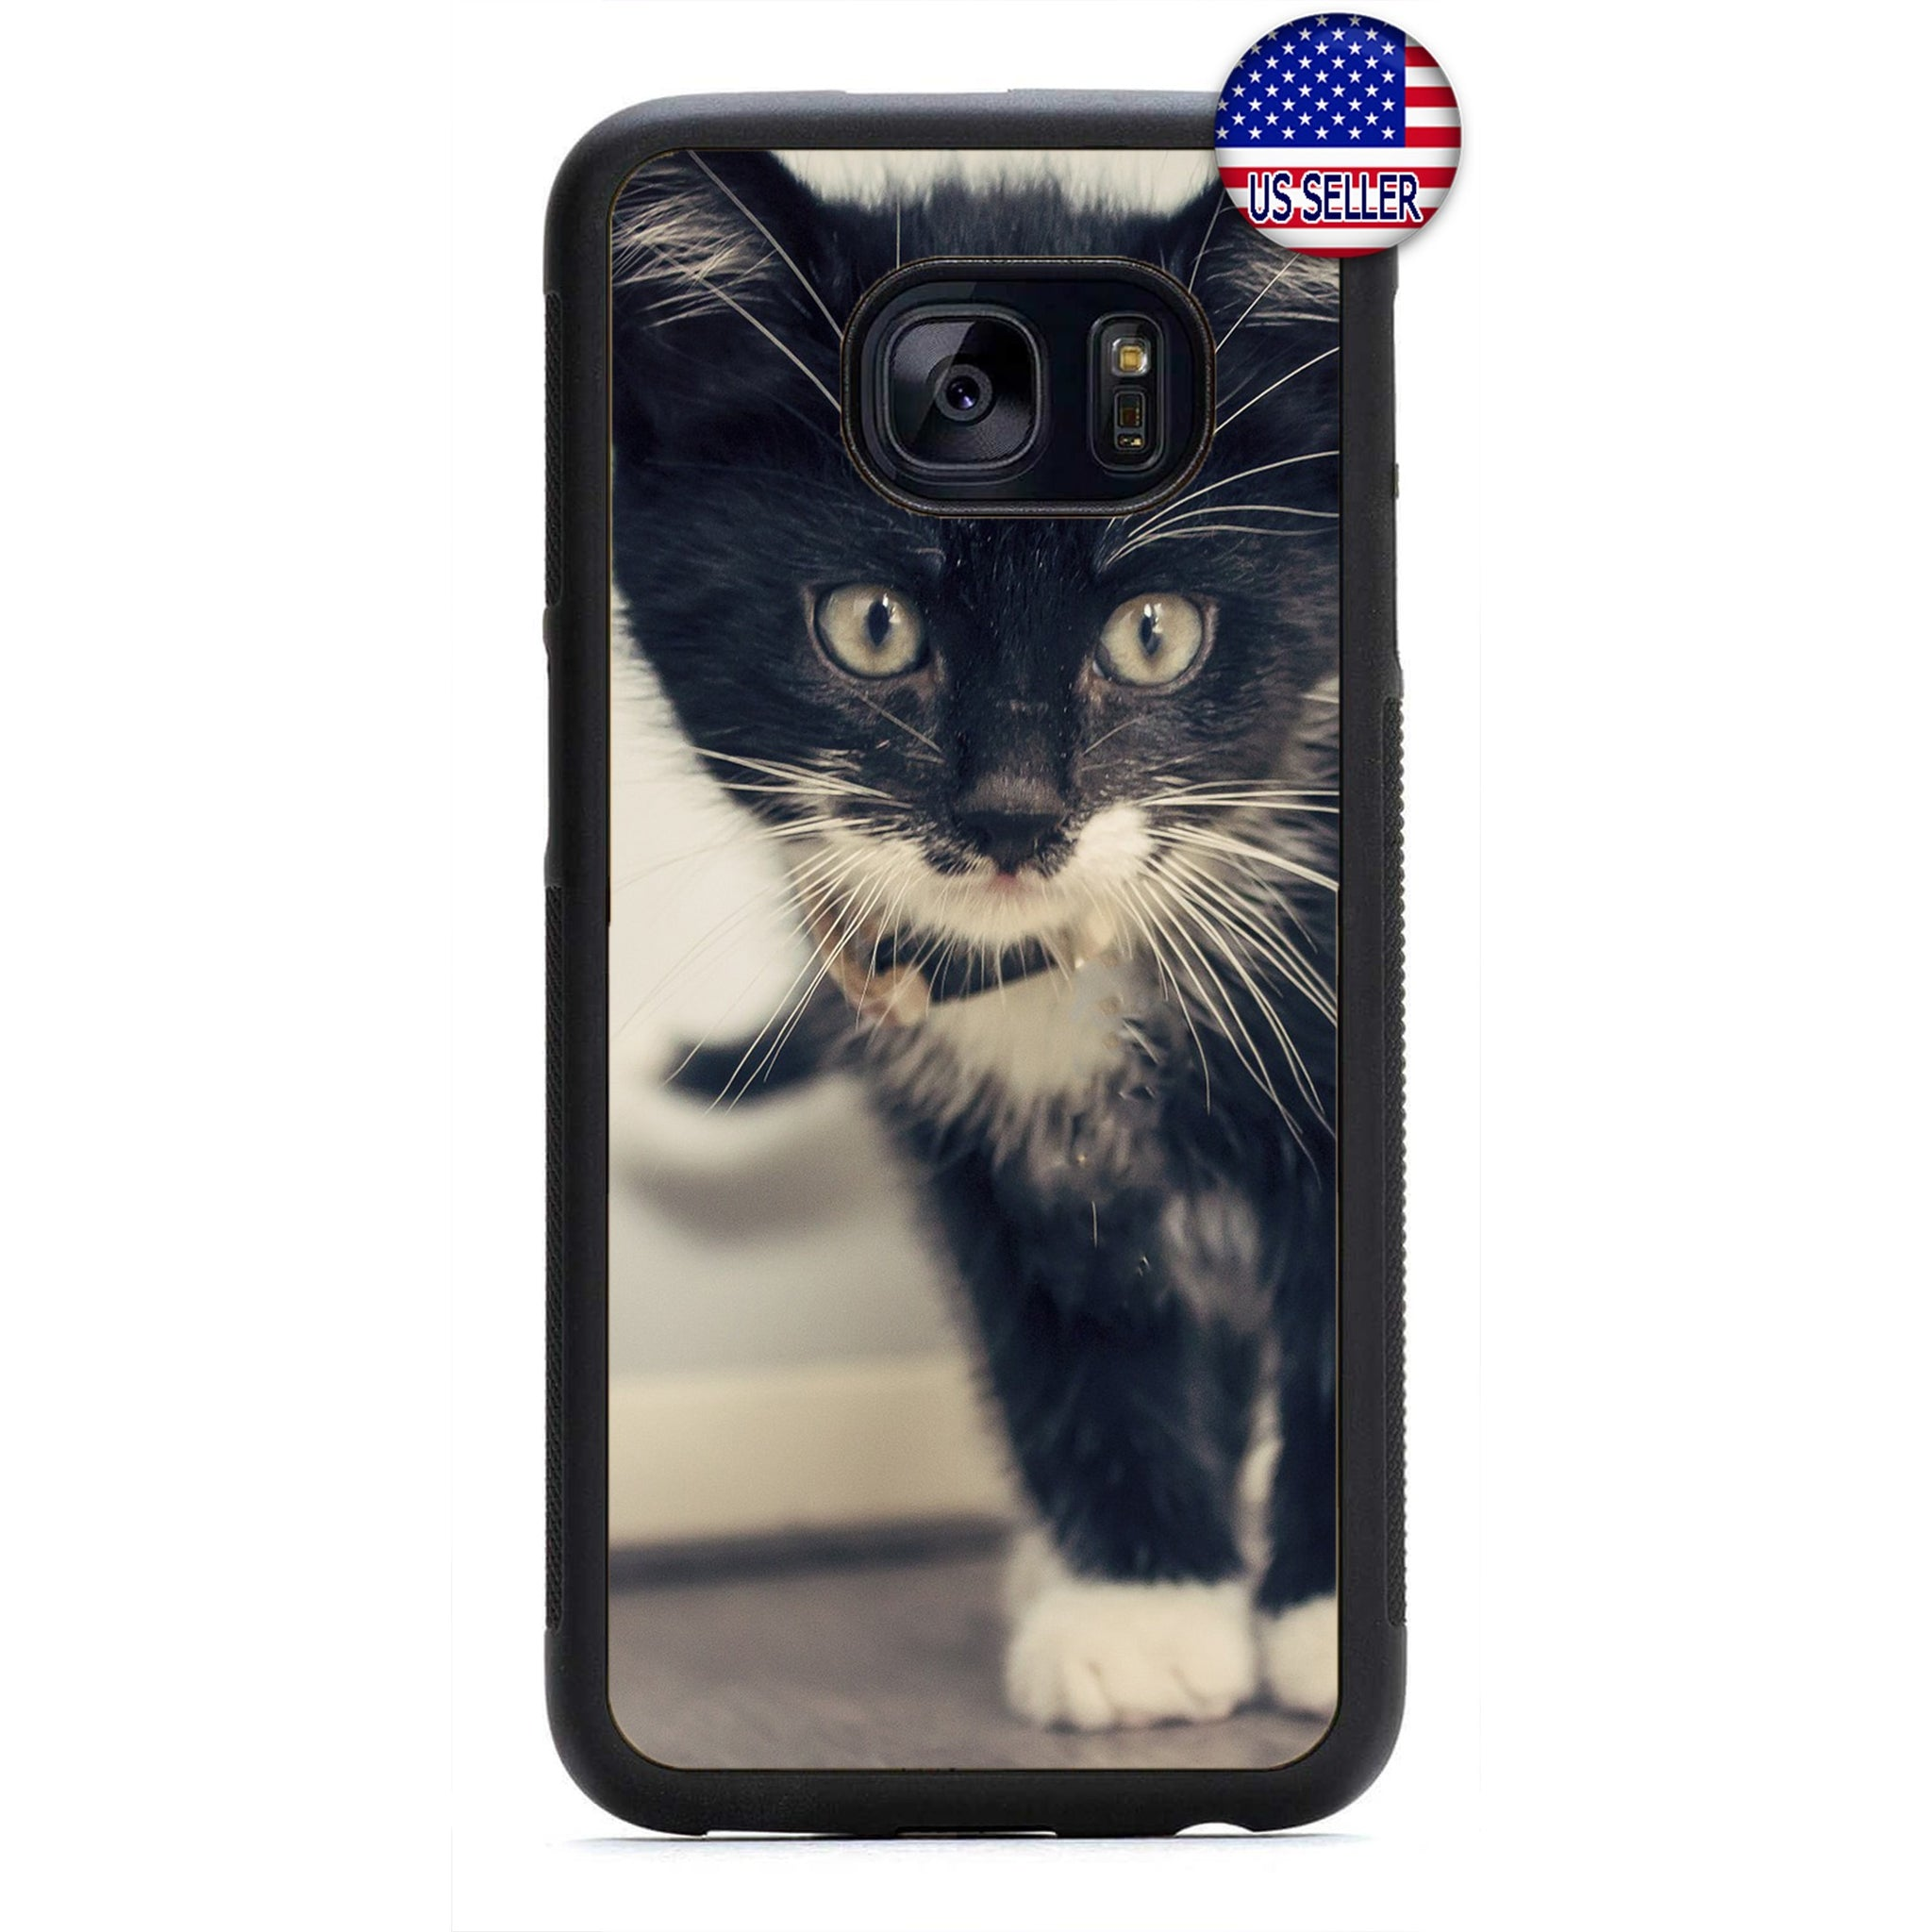 Kitty Cat Kitten Love Rubber Case Cover For Samsung Galaxy